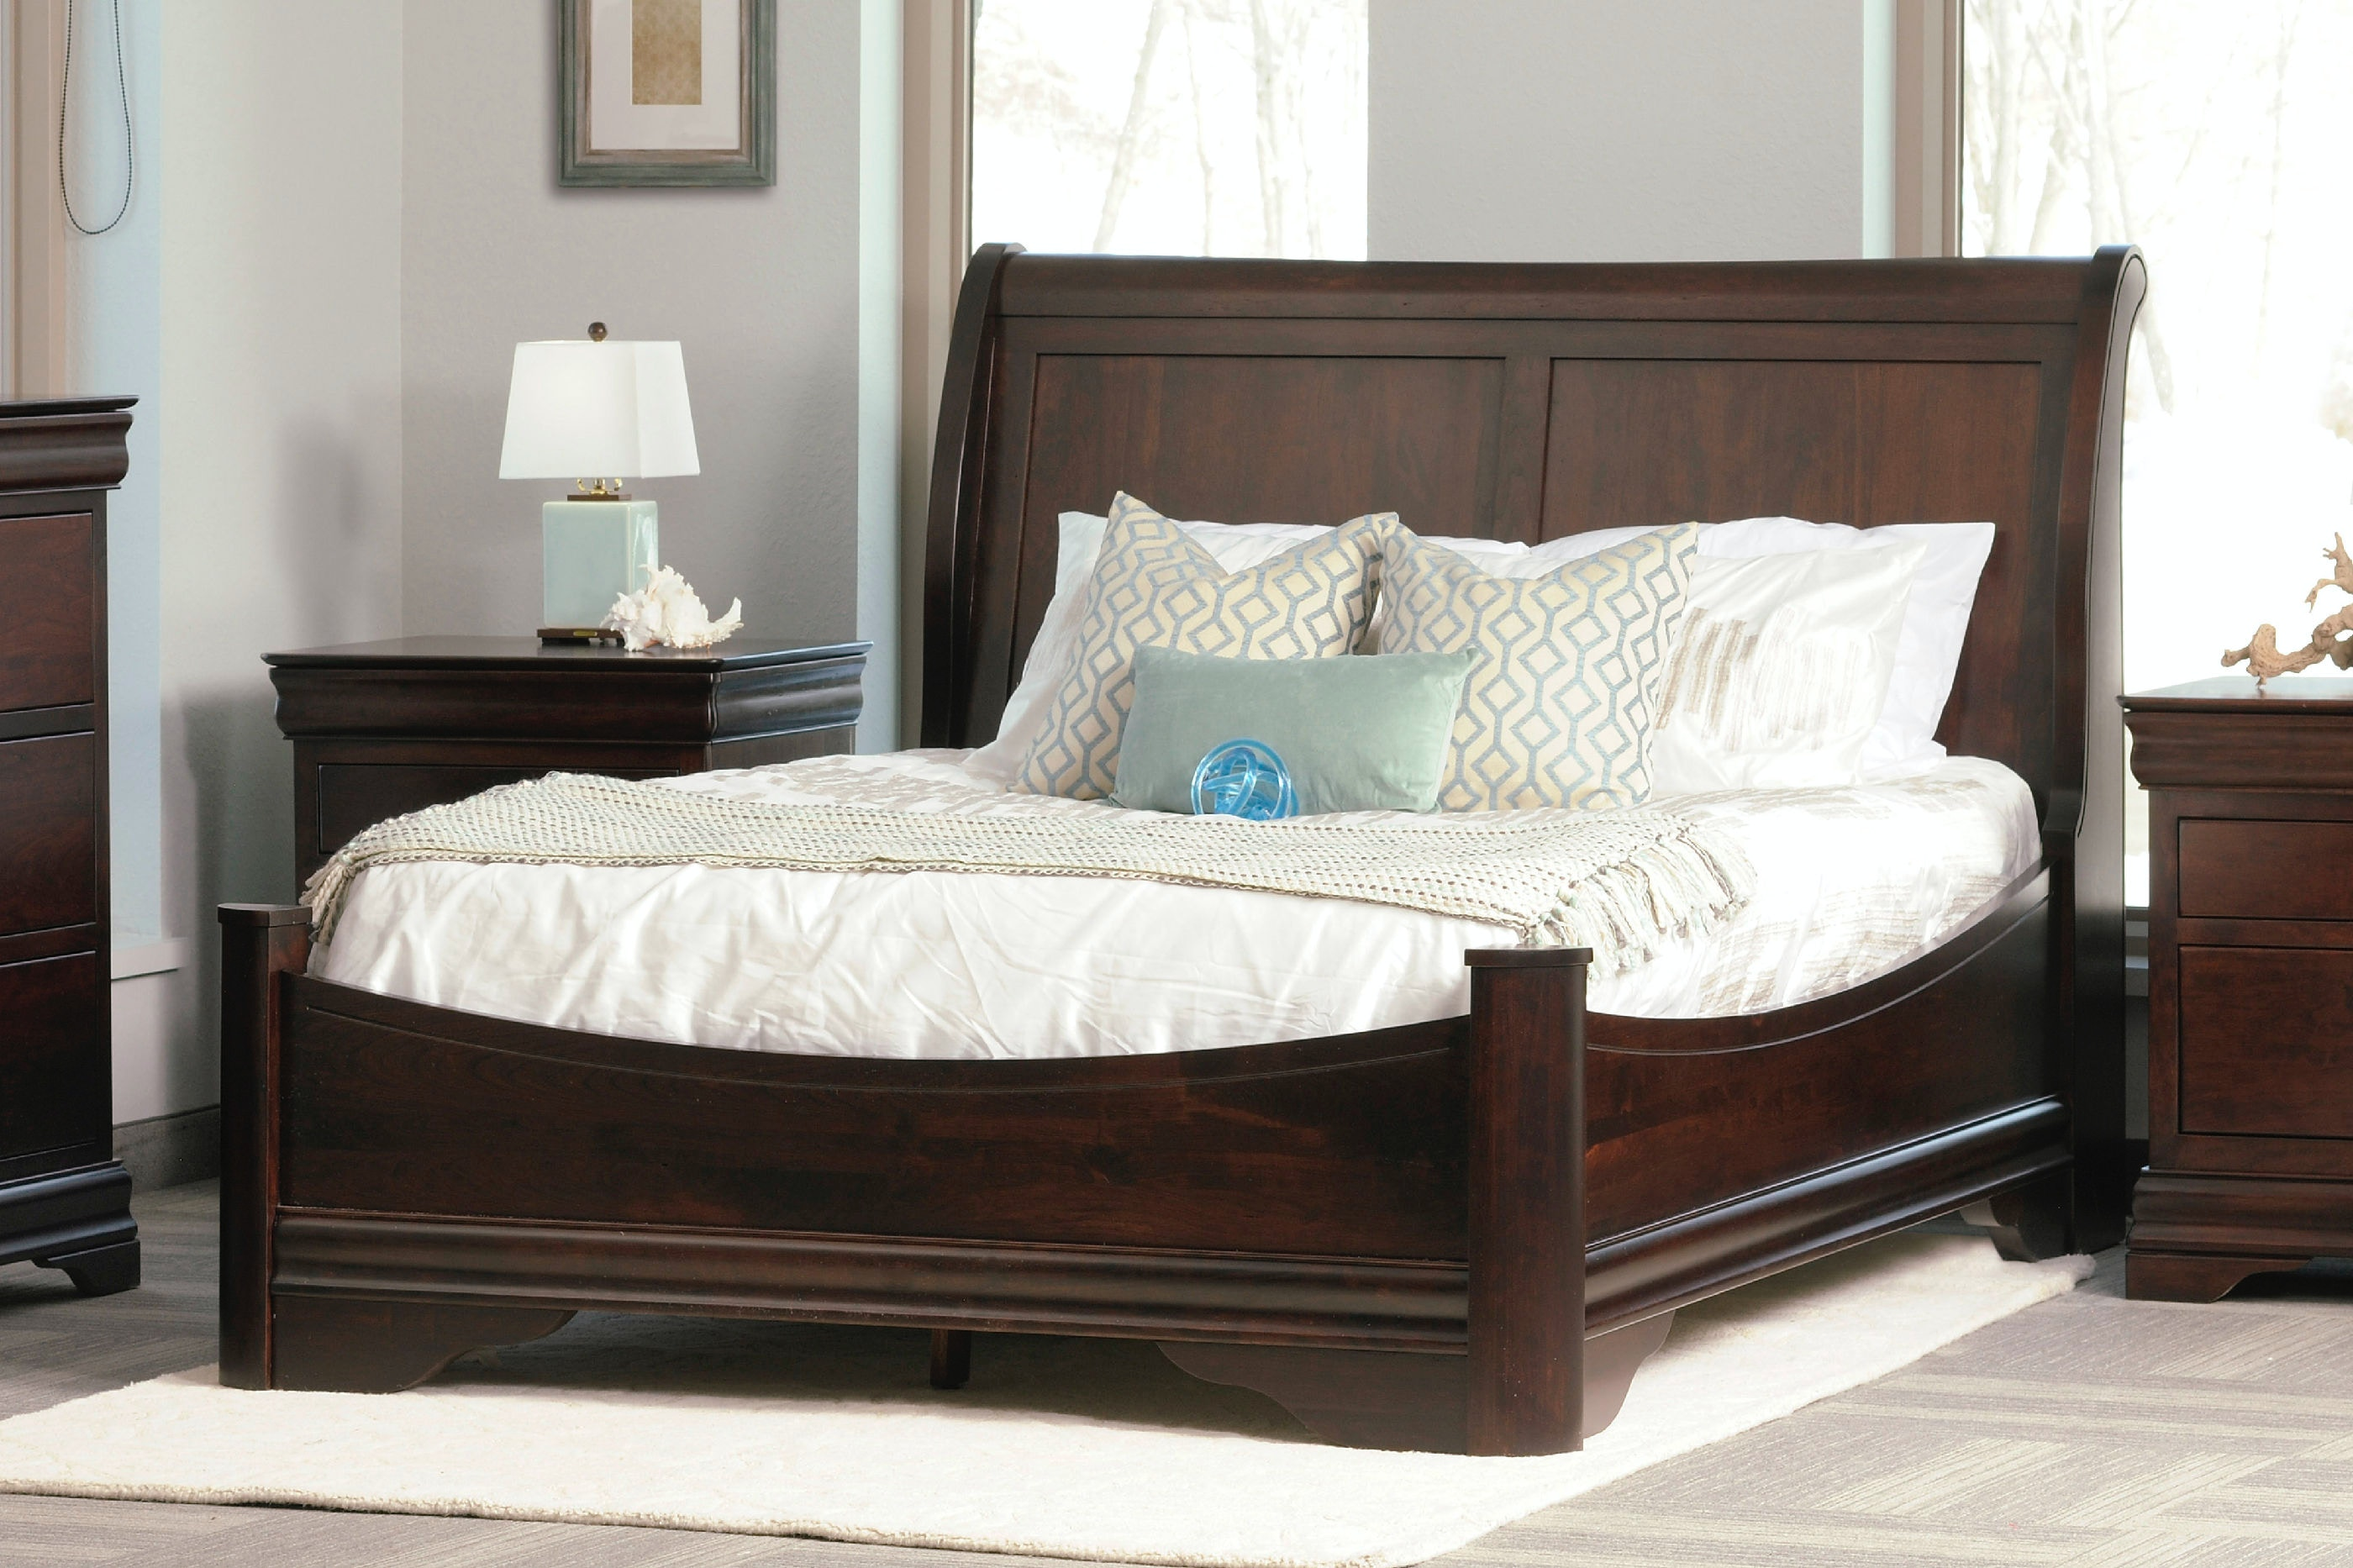 Avignon Bedroom Furniture Decor Adorable Avignon Sleigh Panel Bed With Low Footboard Design Decoration